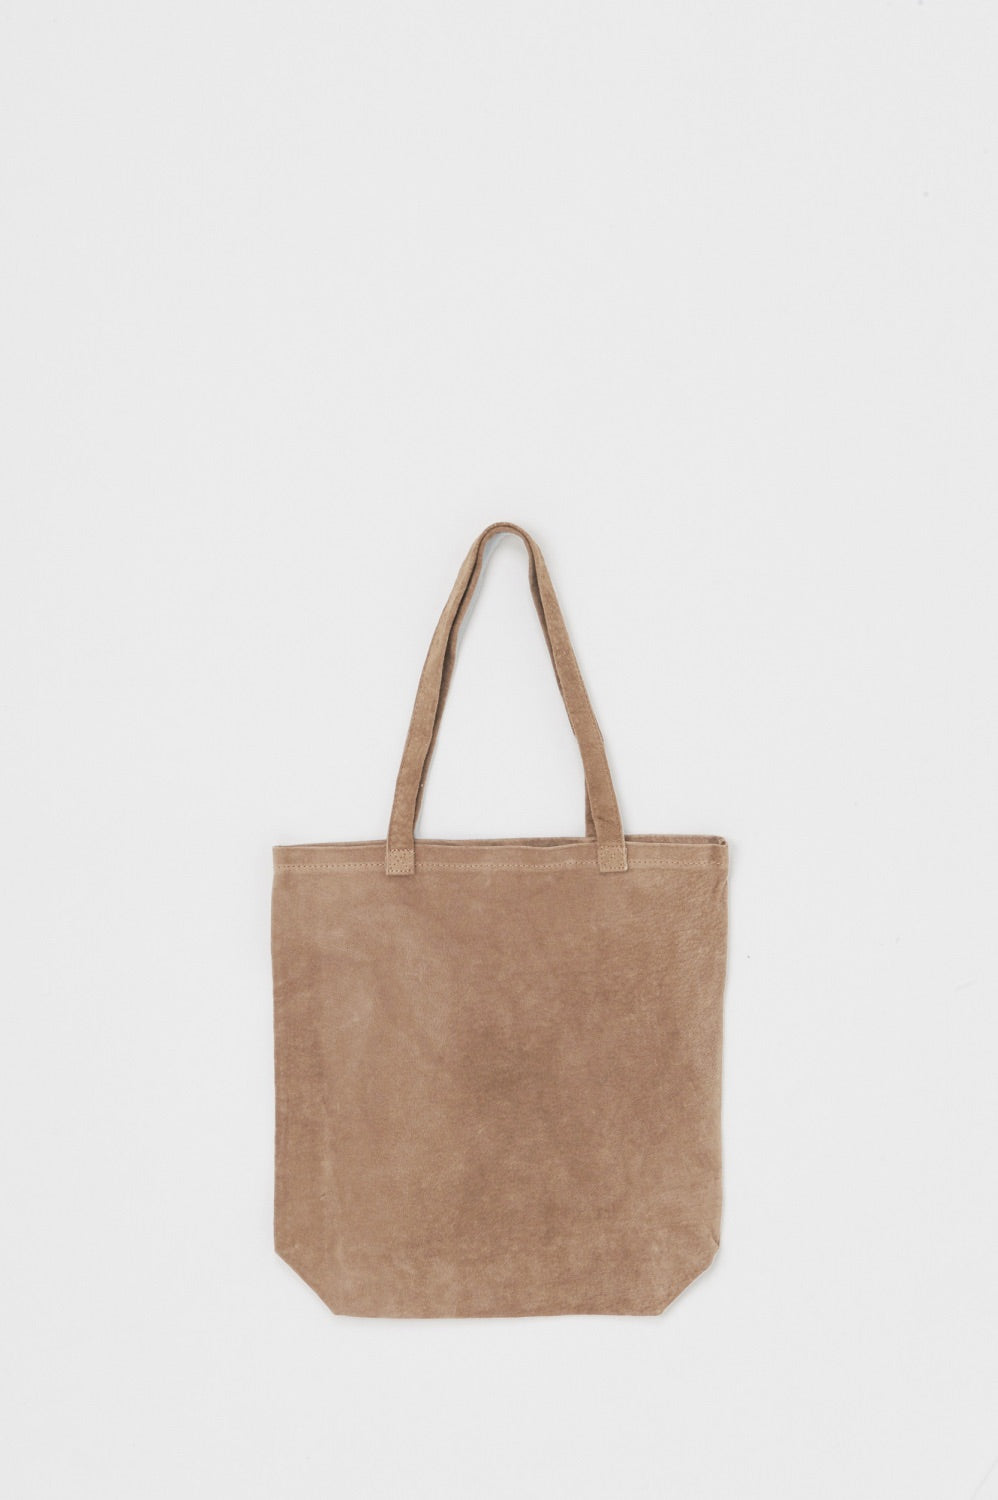 Coming Soon: Pig Bag Medium in Beige